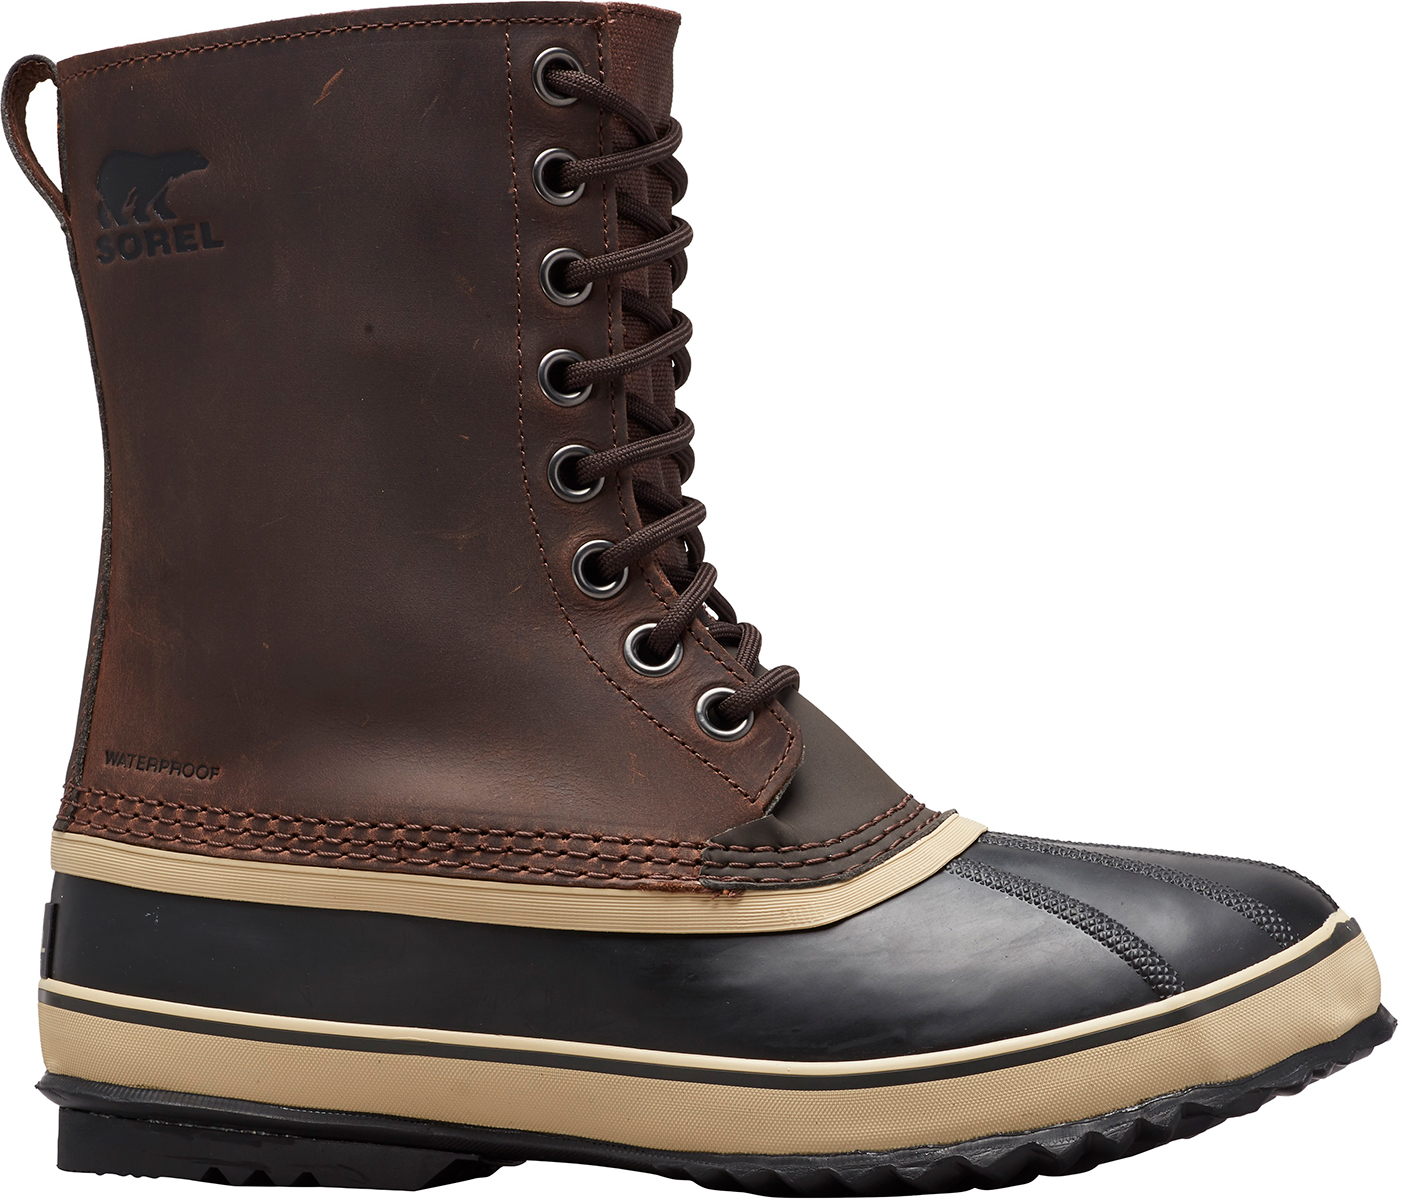 Sorel 1964 Leather Boots | Running shoes